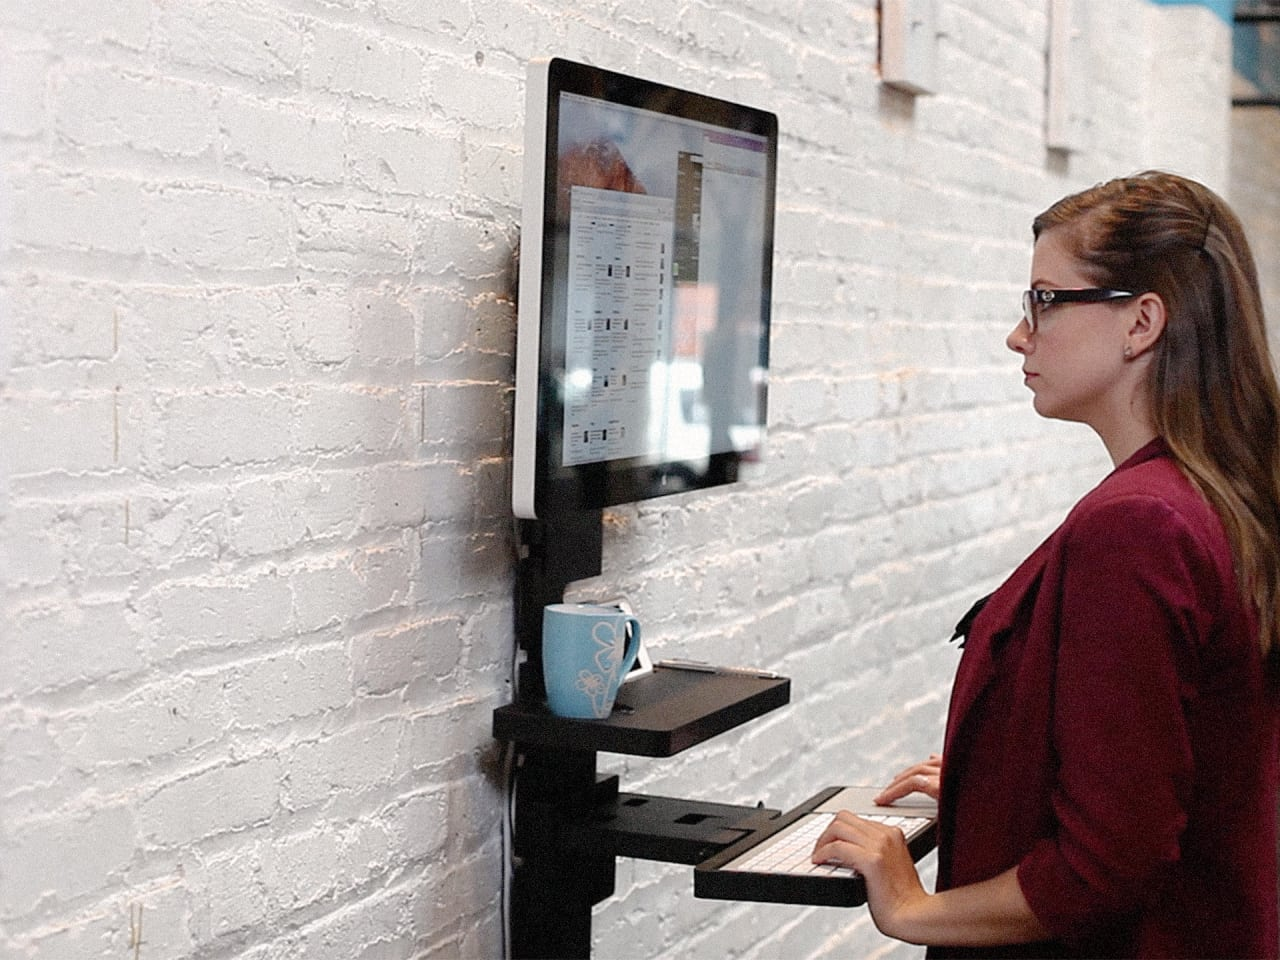 This Wall-Mounted Standing Desk Is Perfect For Coffee Shops And Shared Offices